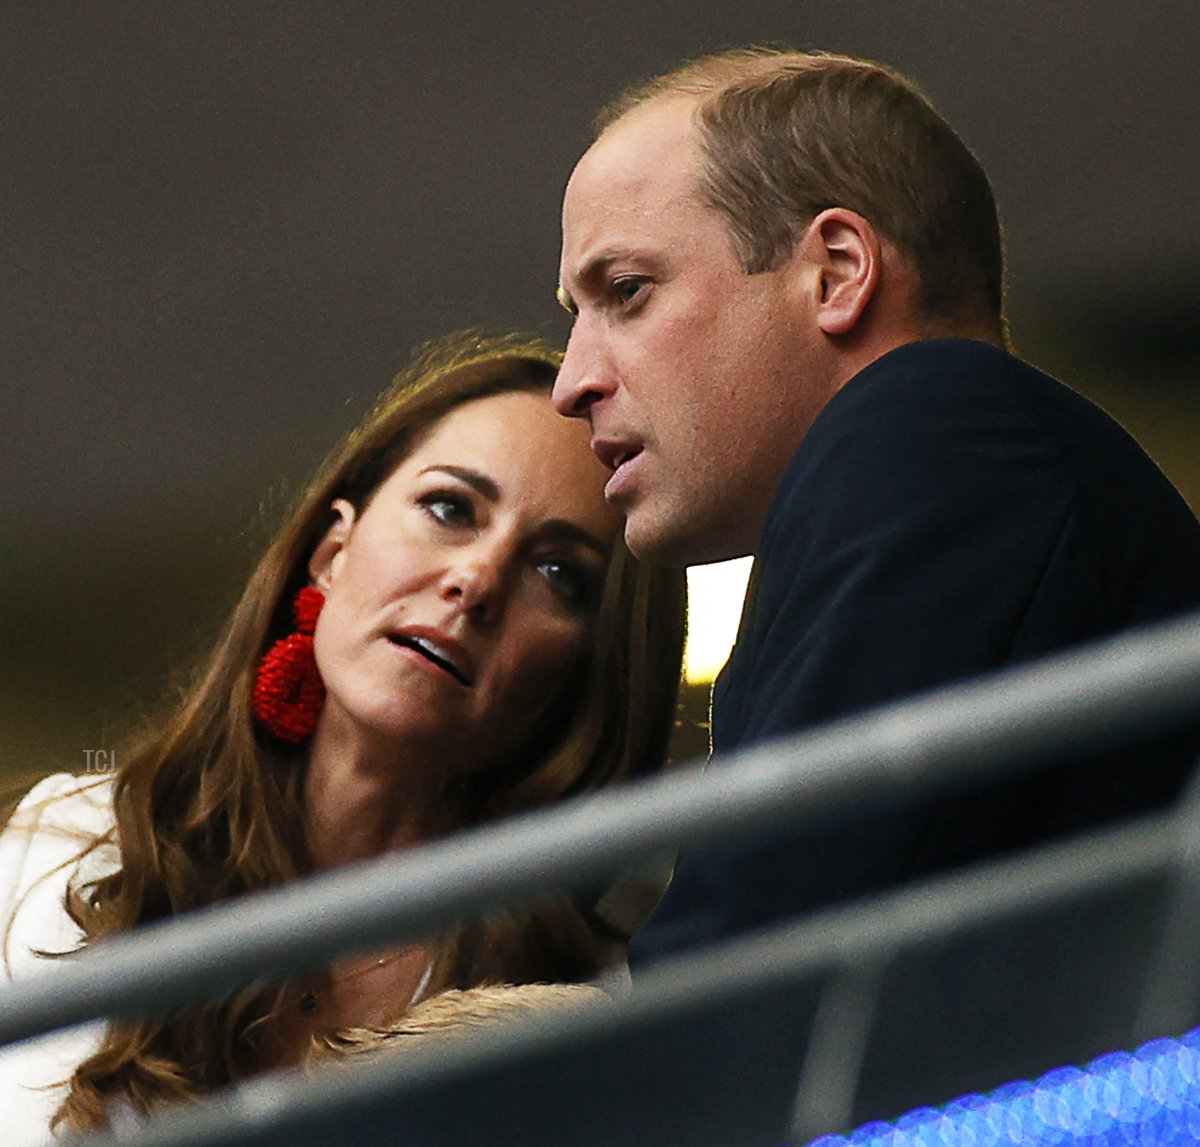 Prince William (R), Duke of Cambridge, listens to Catherine, Duchess of Cambridge, ahead of the UEFA EURO 2020 final football match between Italy and England at the Wembley Stadium in London on July 11, 2021